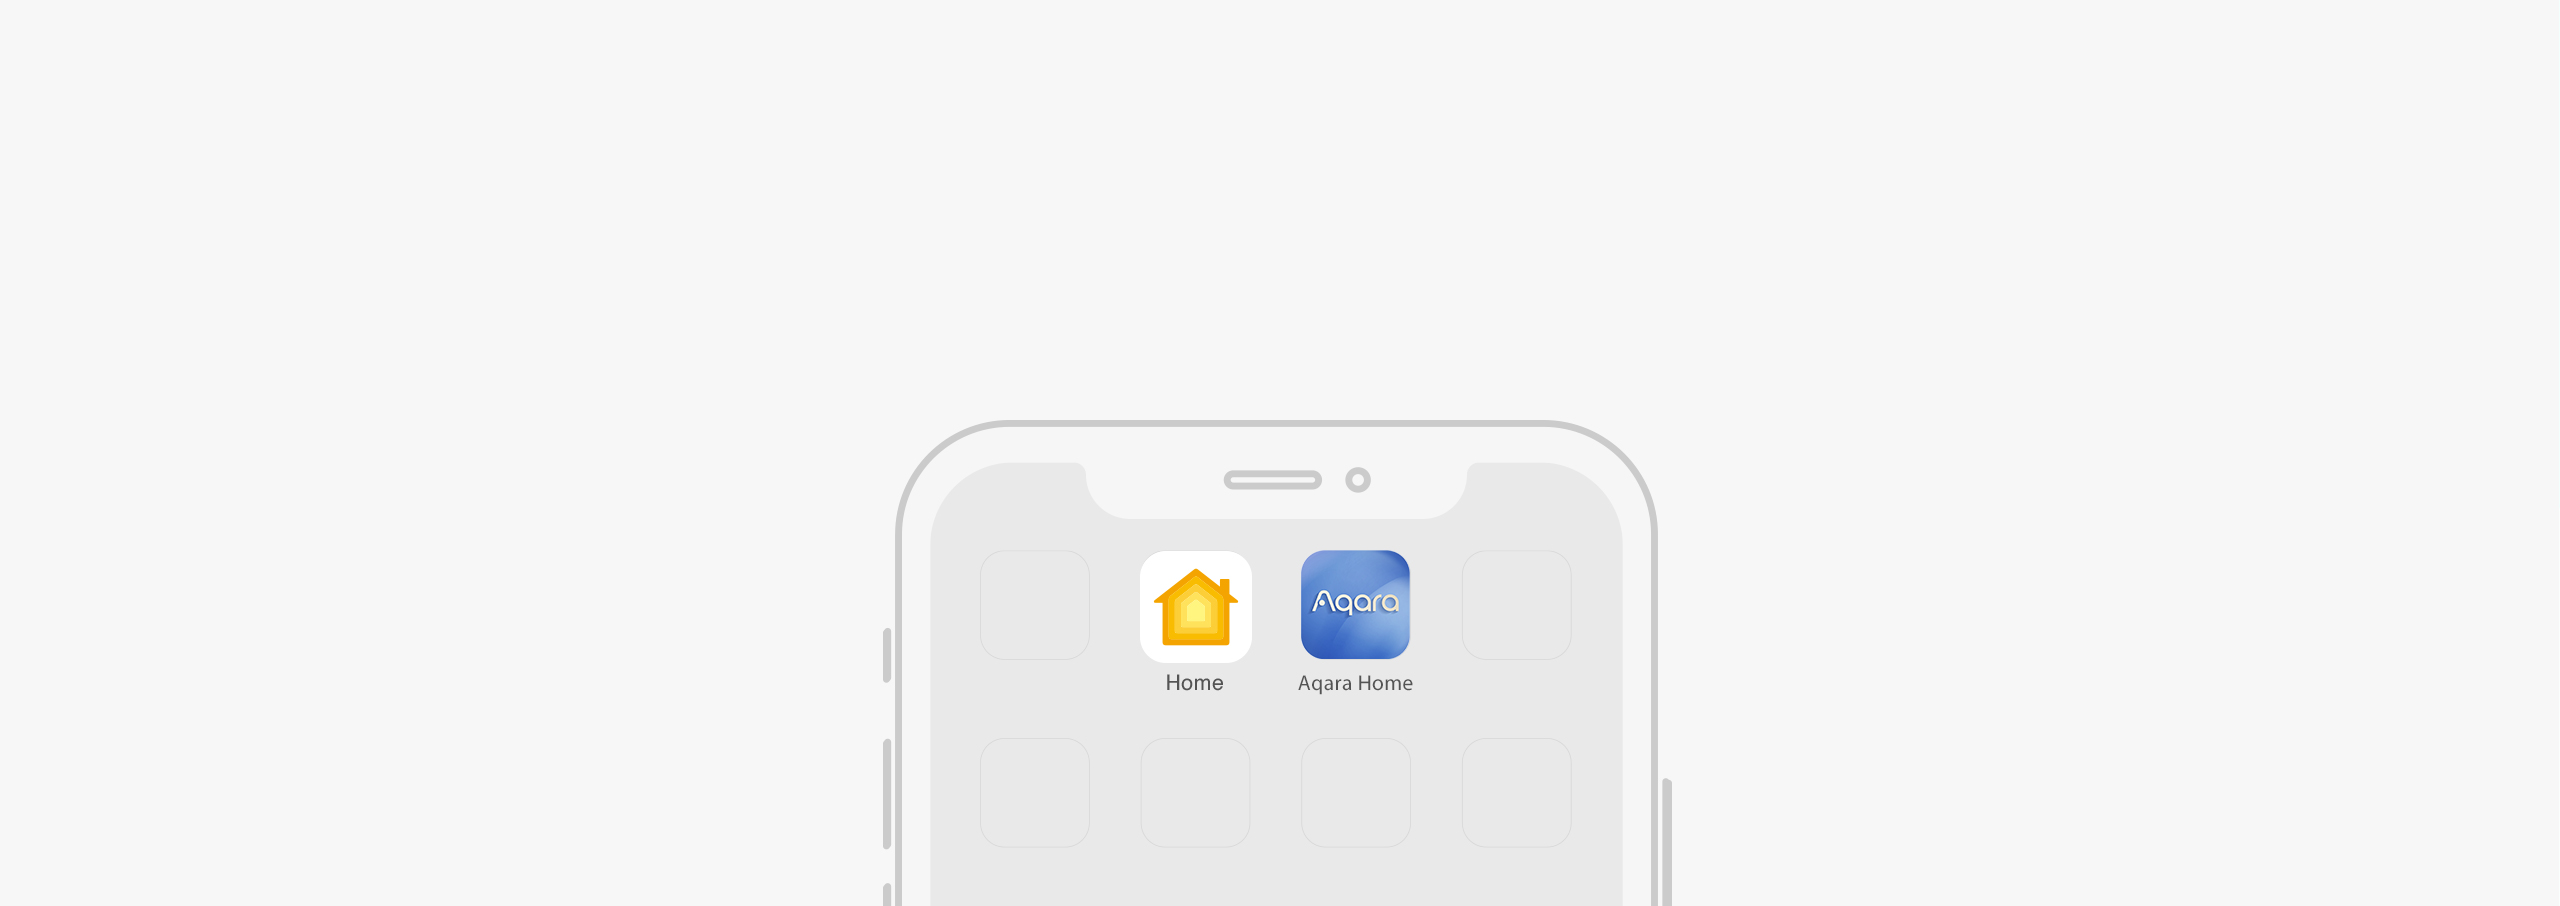 Aqara motion sensor works with Apple HomeKit and Xiaomi Mijia